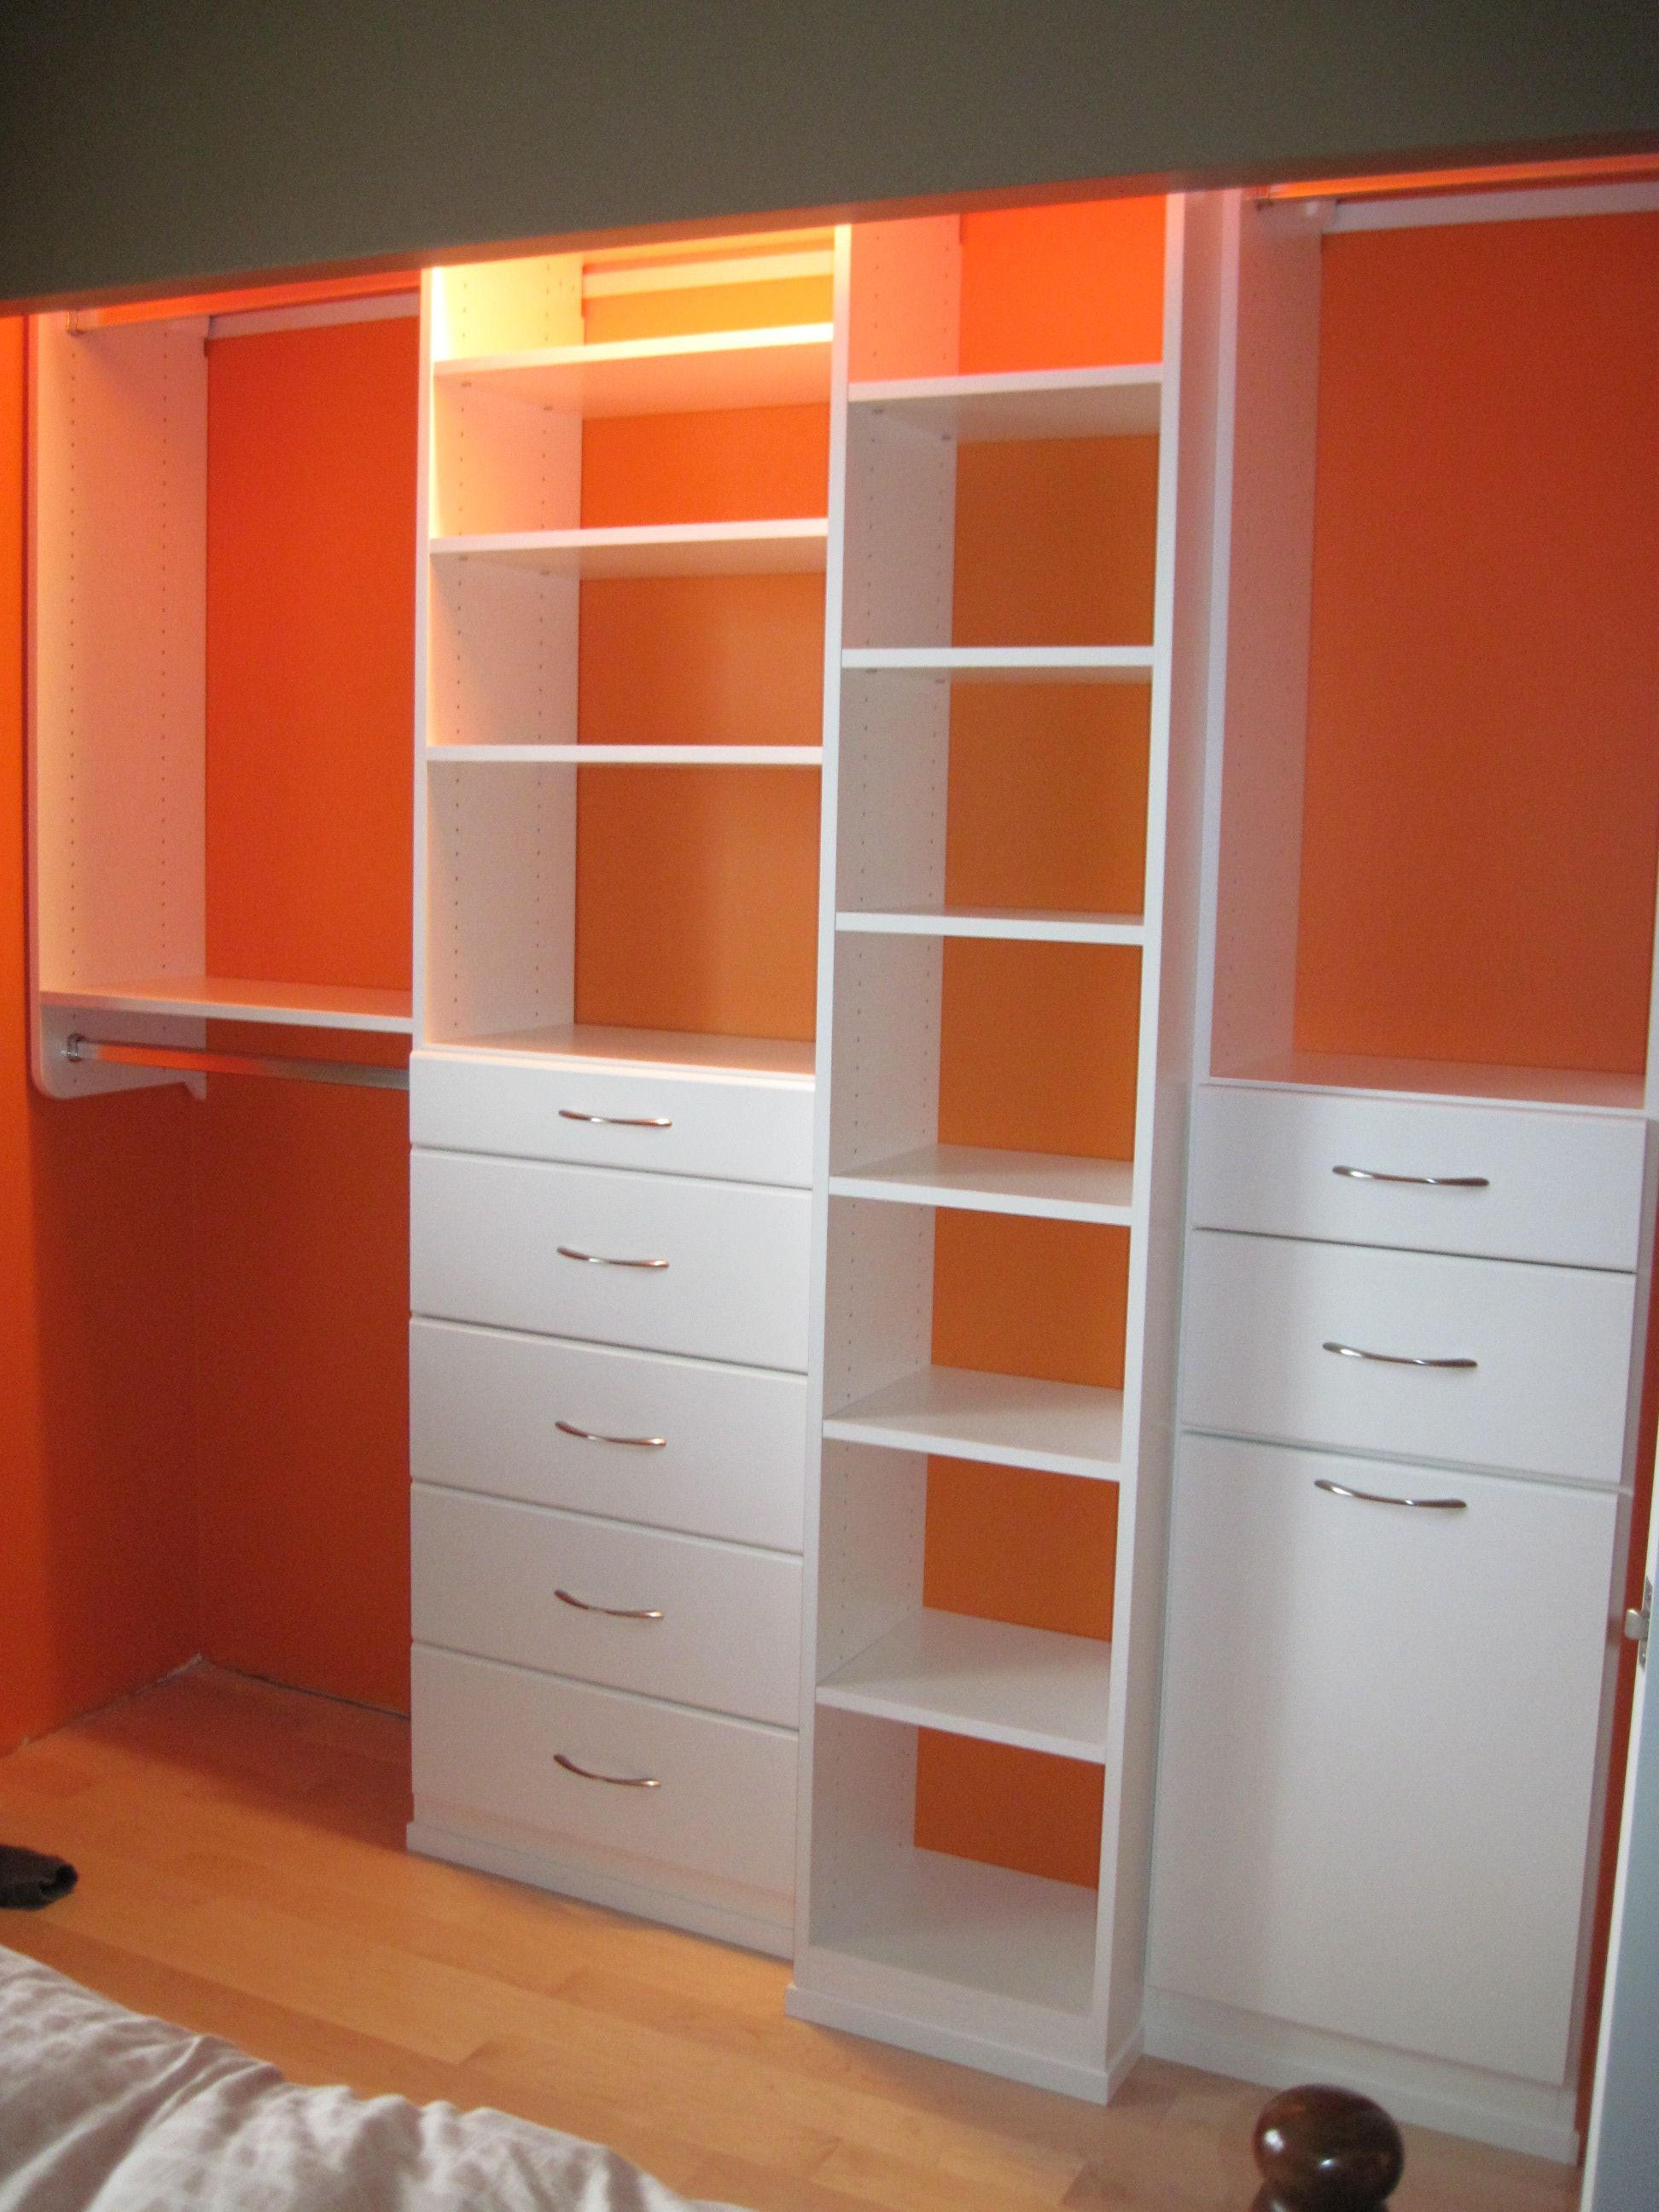 storage organizers things know closet before embarking on you wood should